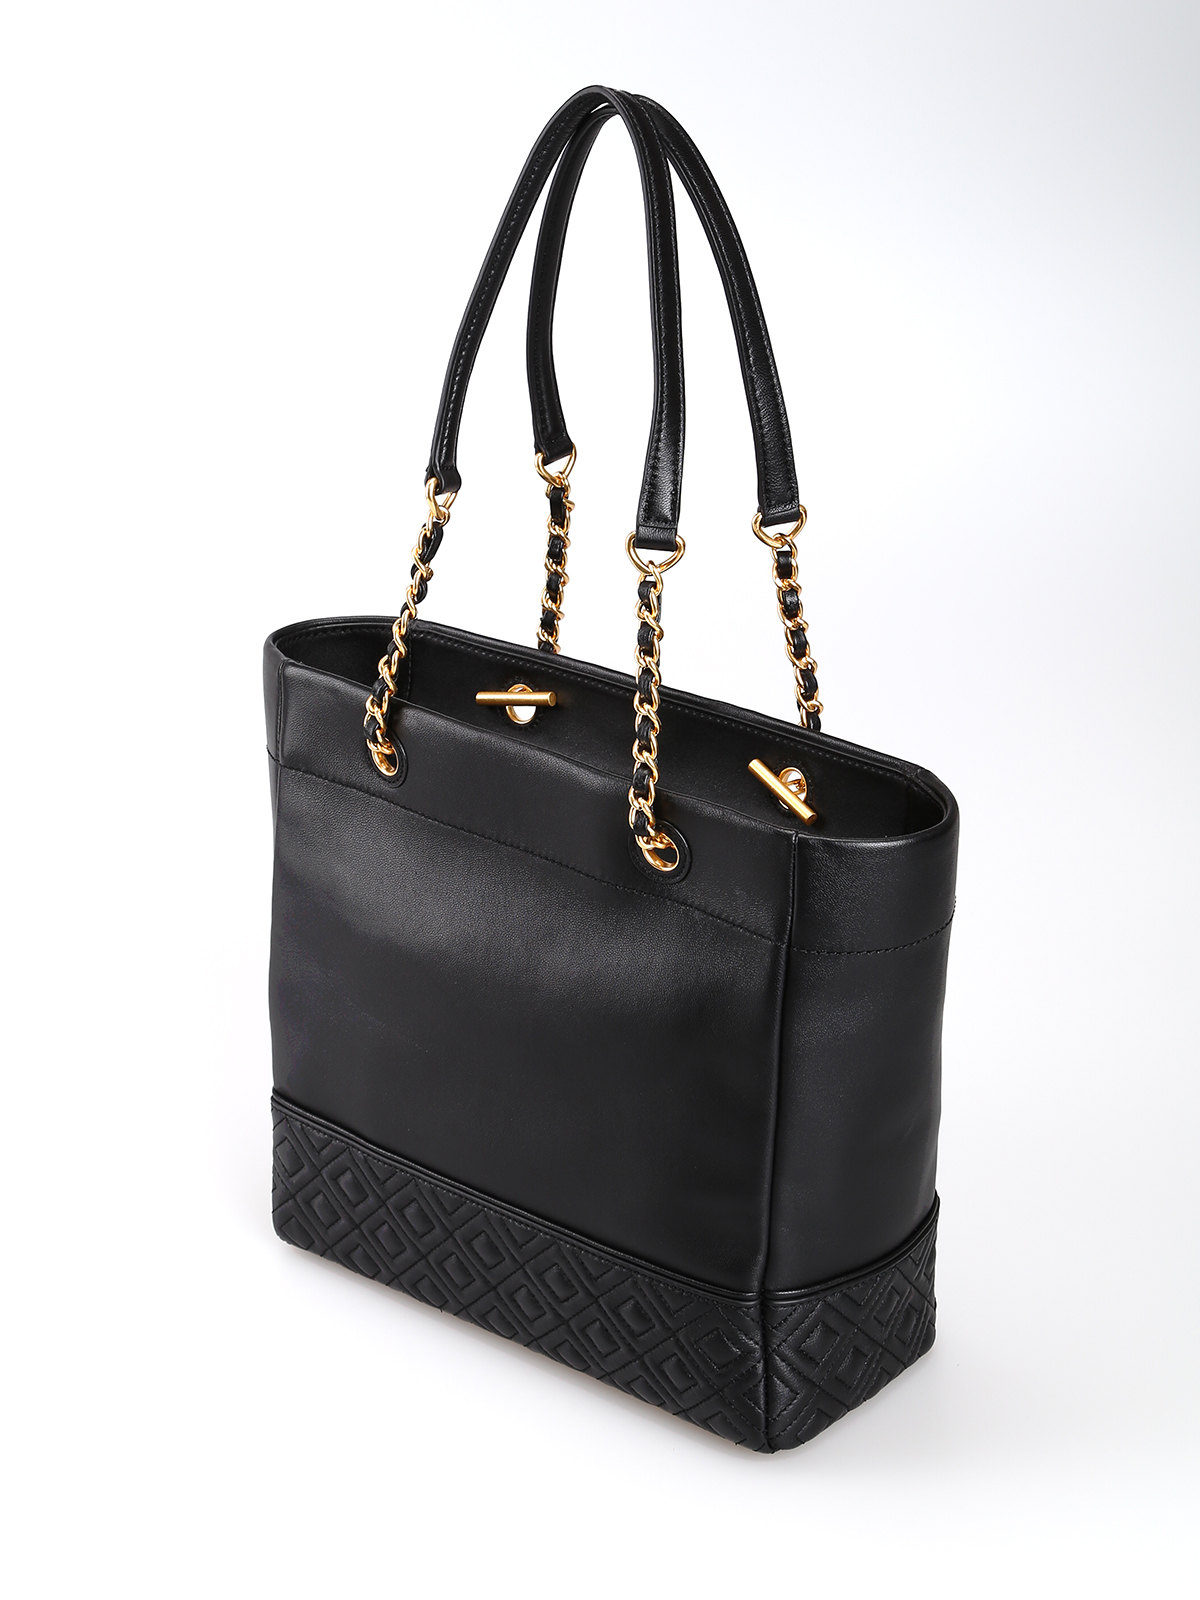 2c46c2486ed iKRIX TORY BURCH: totes bags - Fleming golden chain black leather tote bag